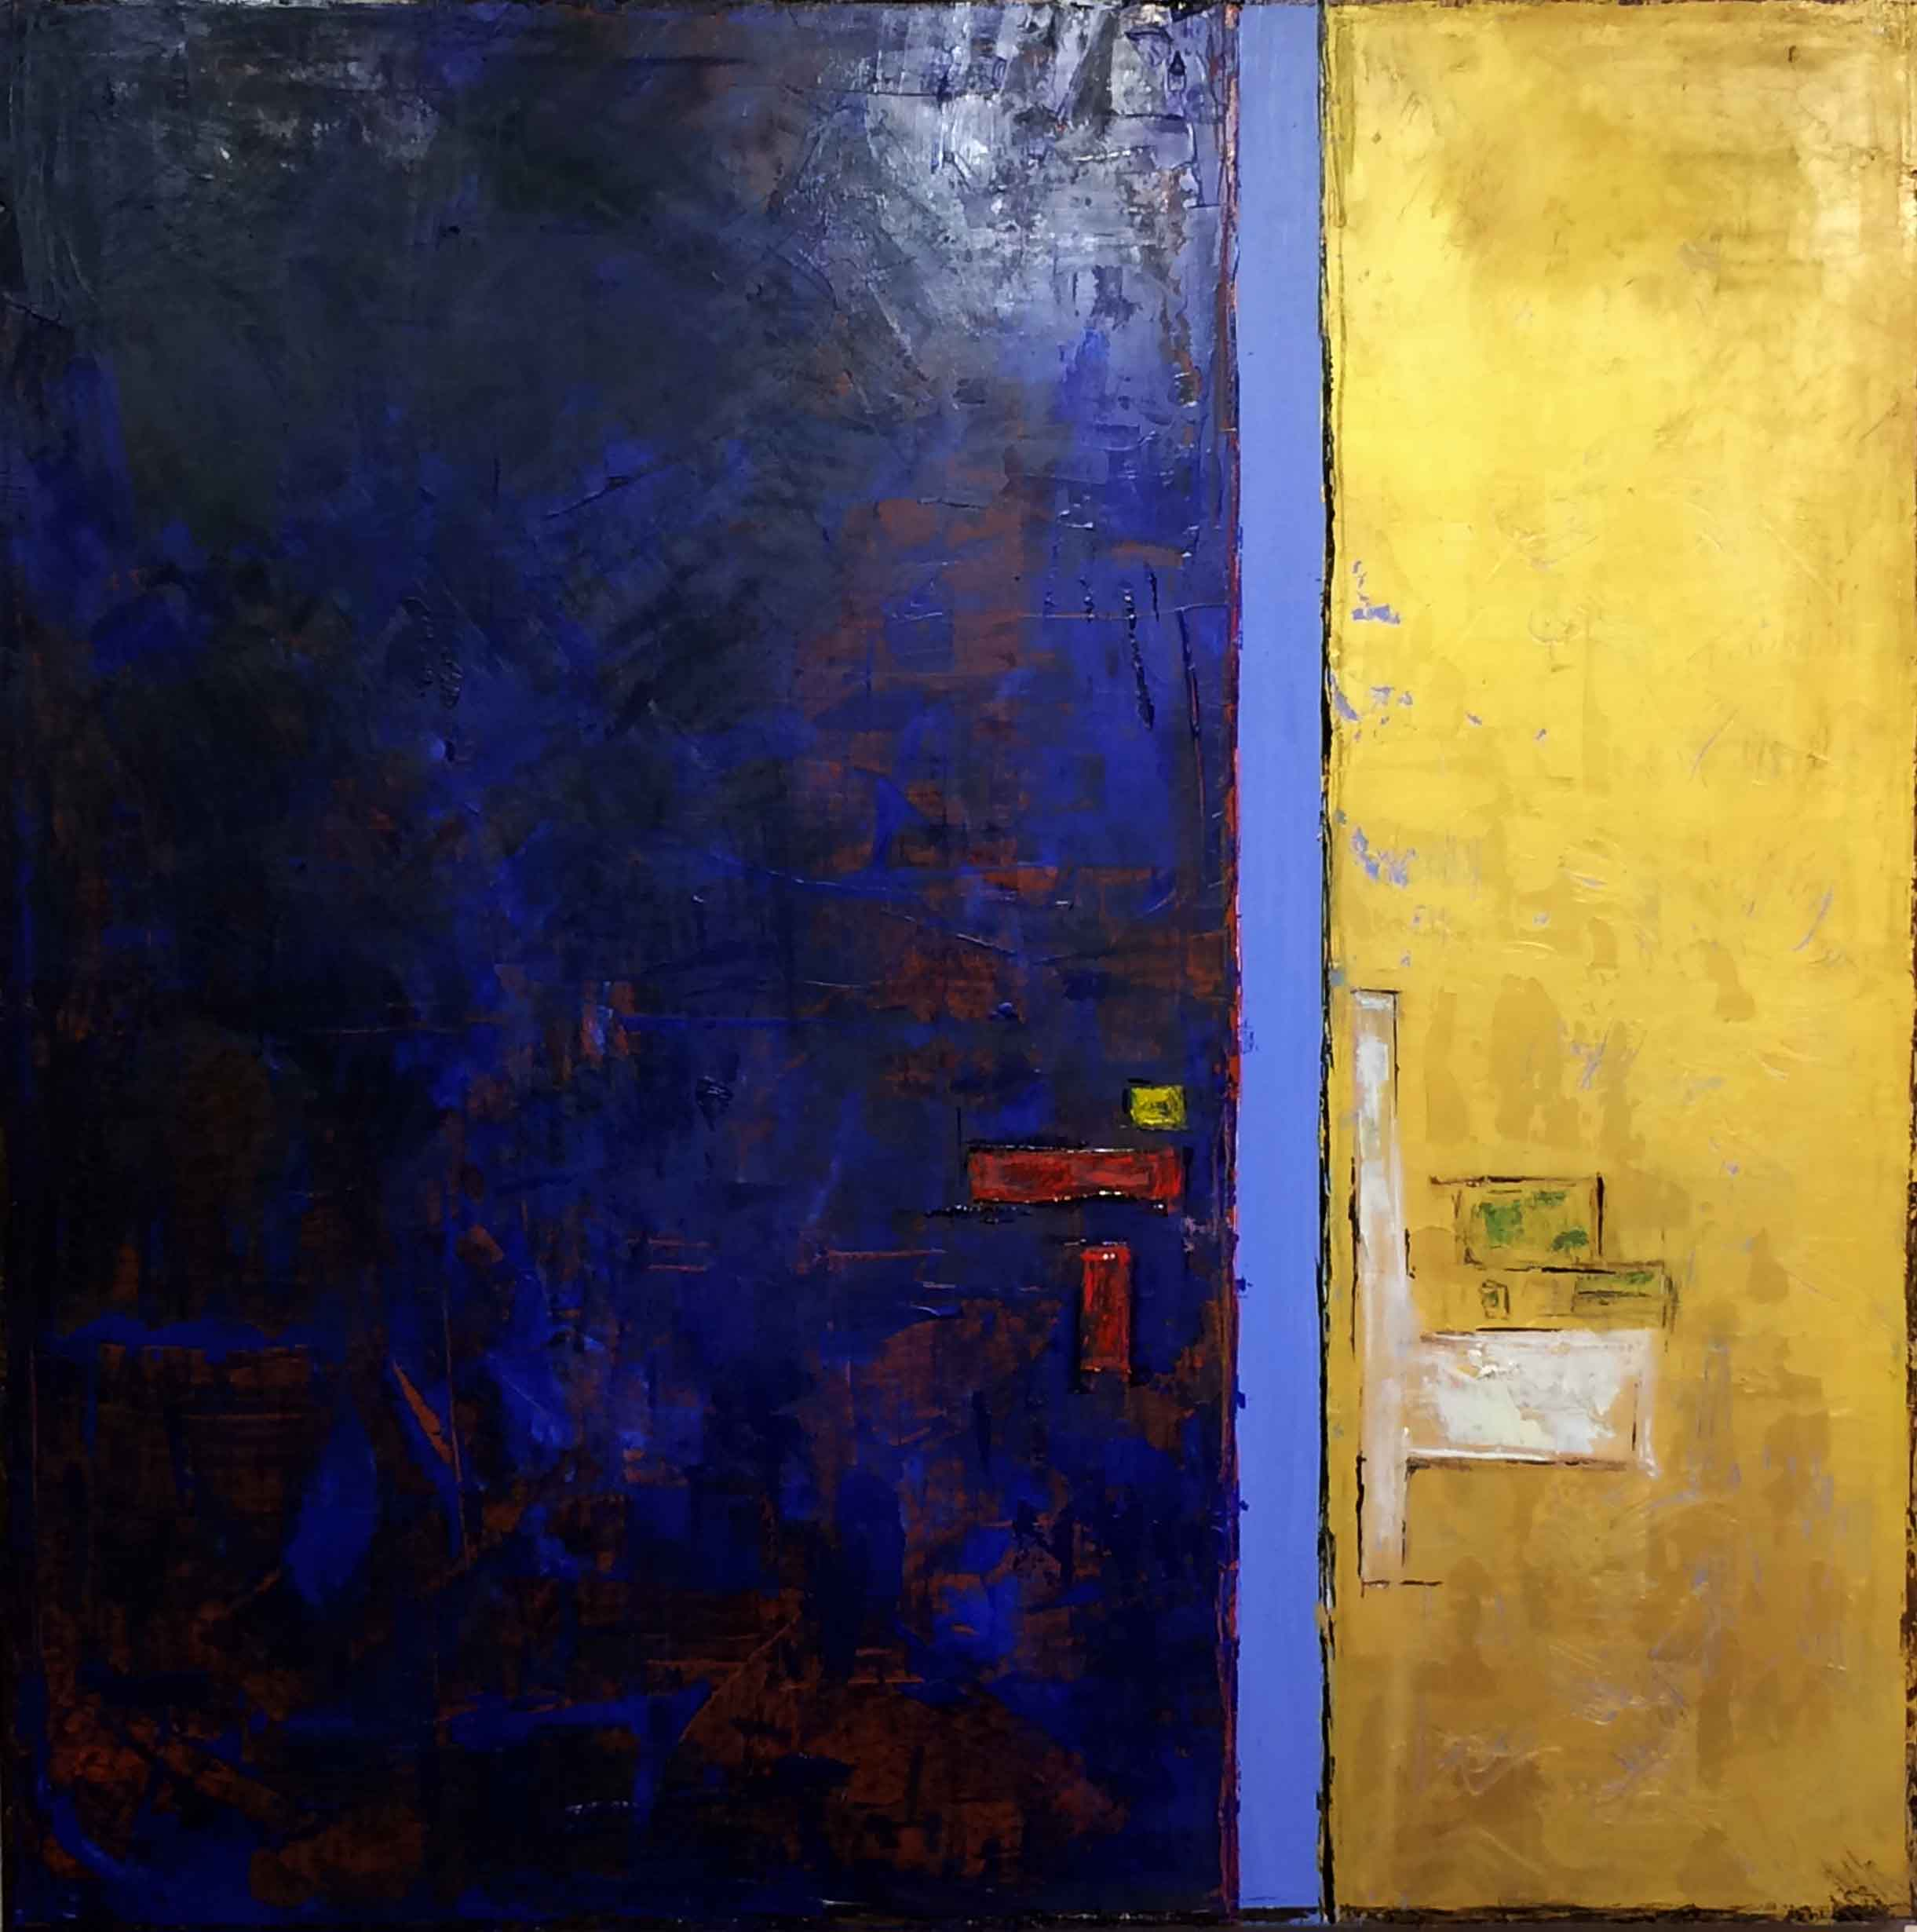 Consciousness 48x48 (Sold to Madison